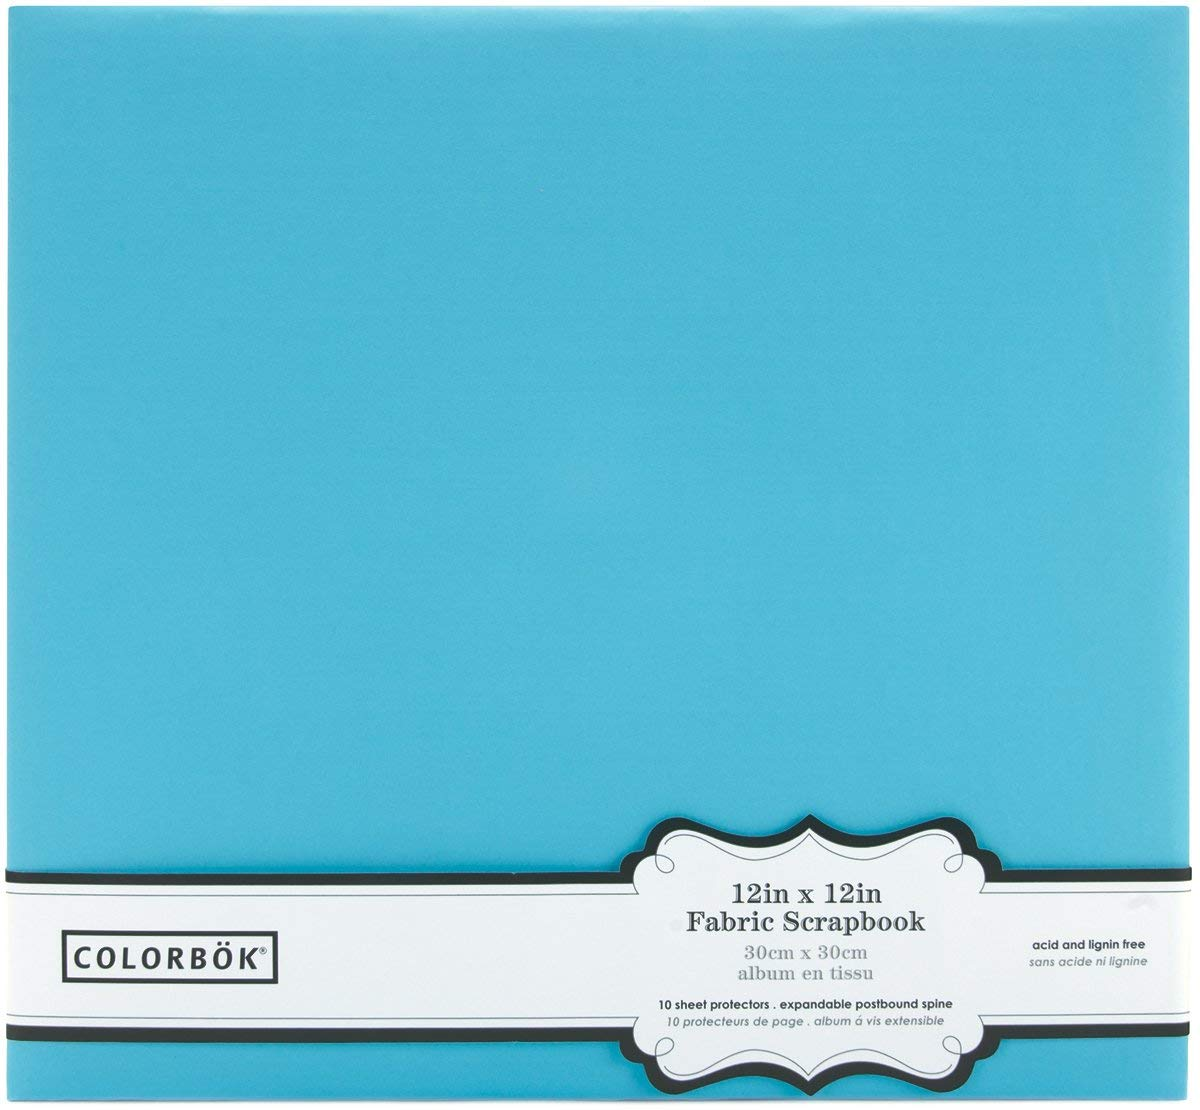 Colorbok Fabric Post Bound Photo Album, 12 by 12-Inch, Light Teal